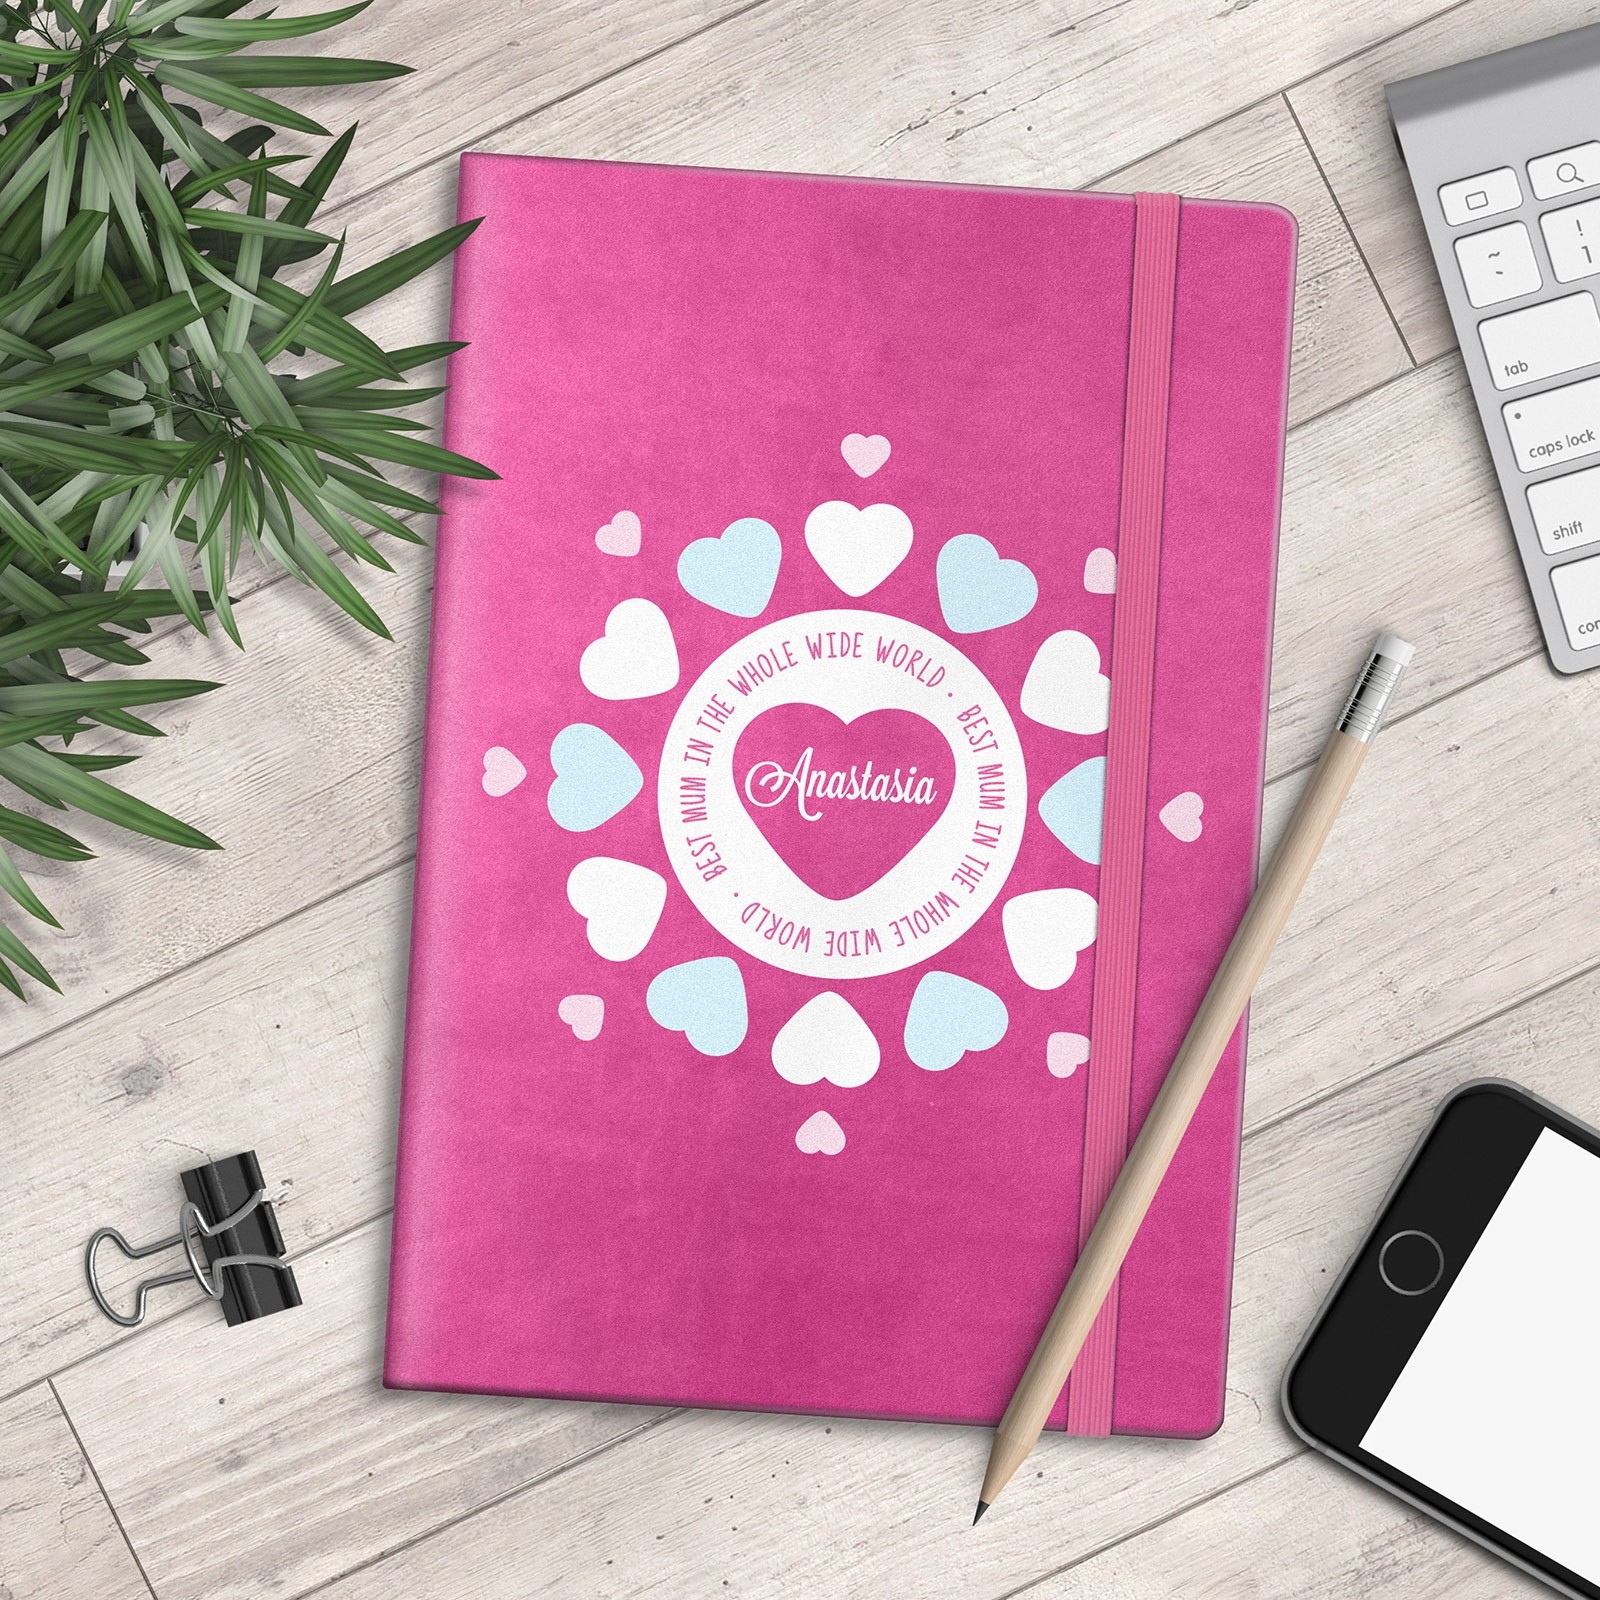 Personalised A5 Notebook - Best Mum in the Whole Wide World - Hearts Design - myNo Book